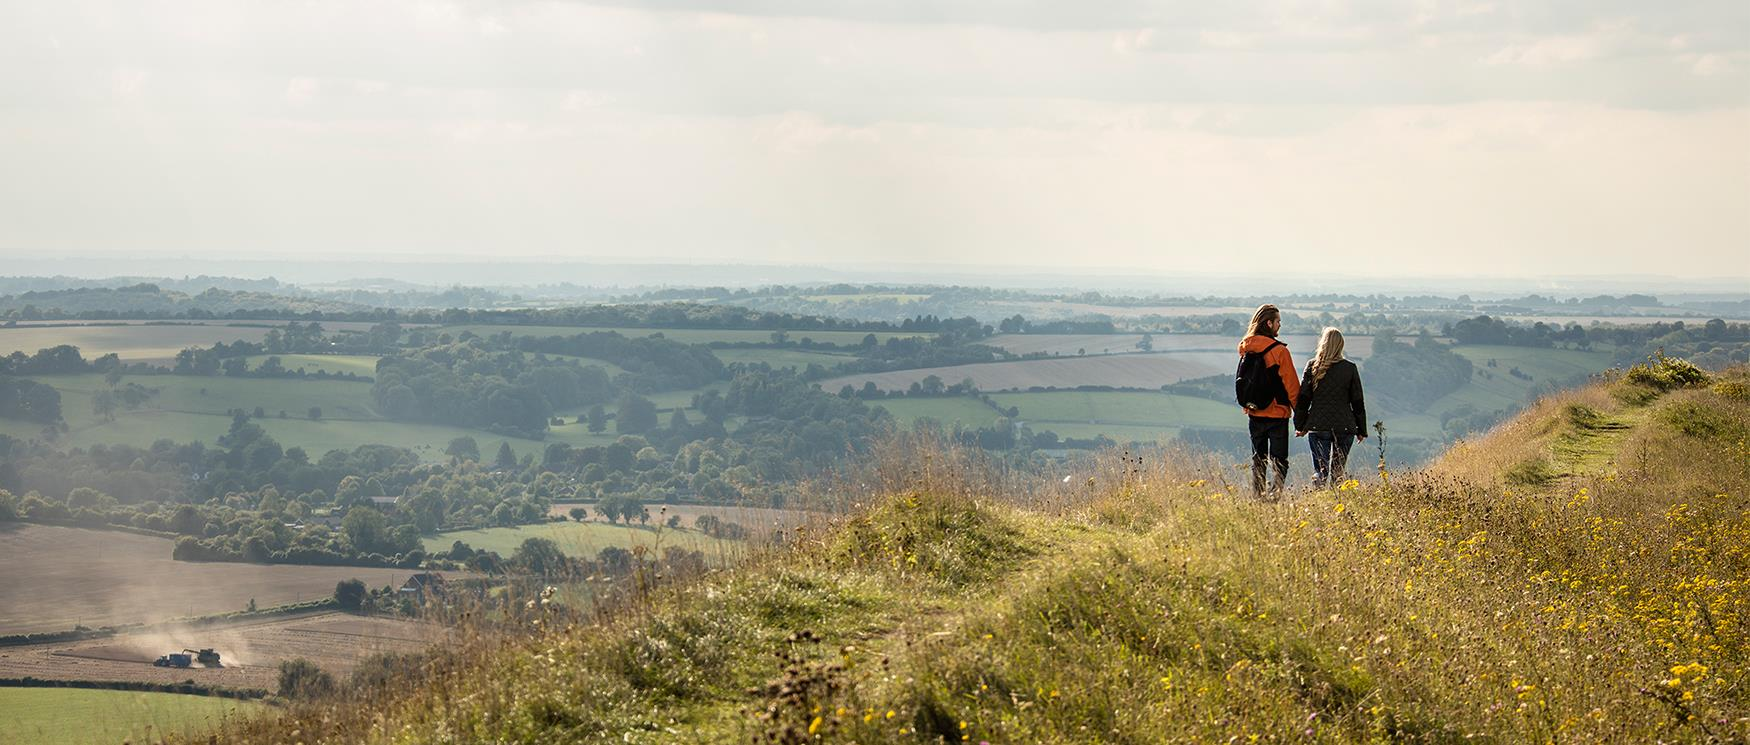 The Best Walks in Hampshire | Walking & Hiking Routes